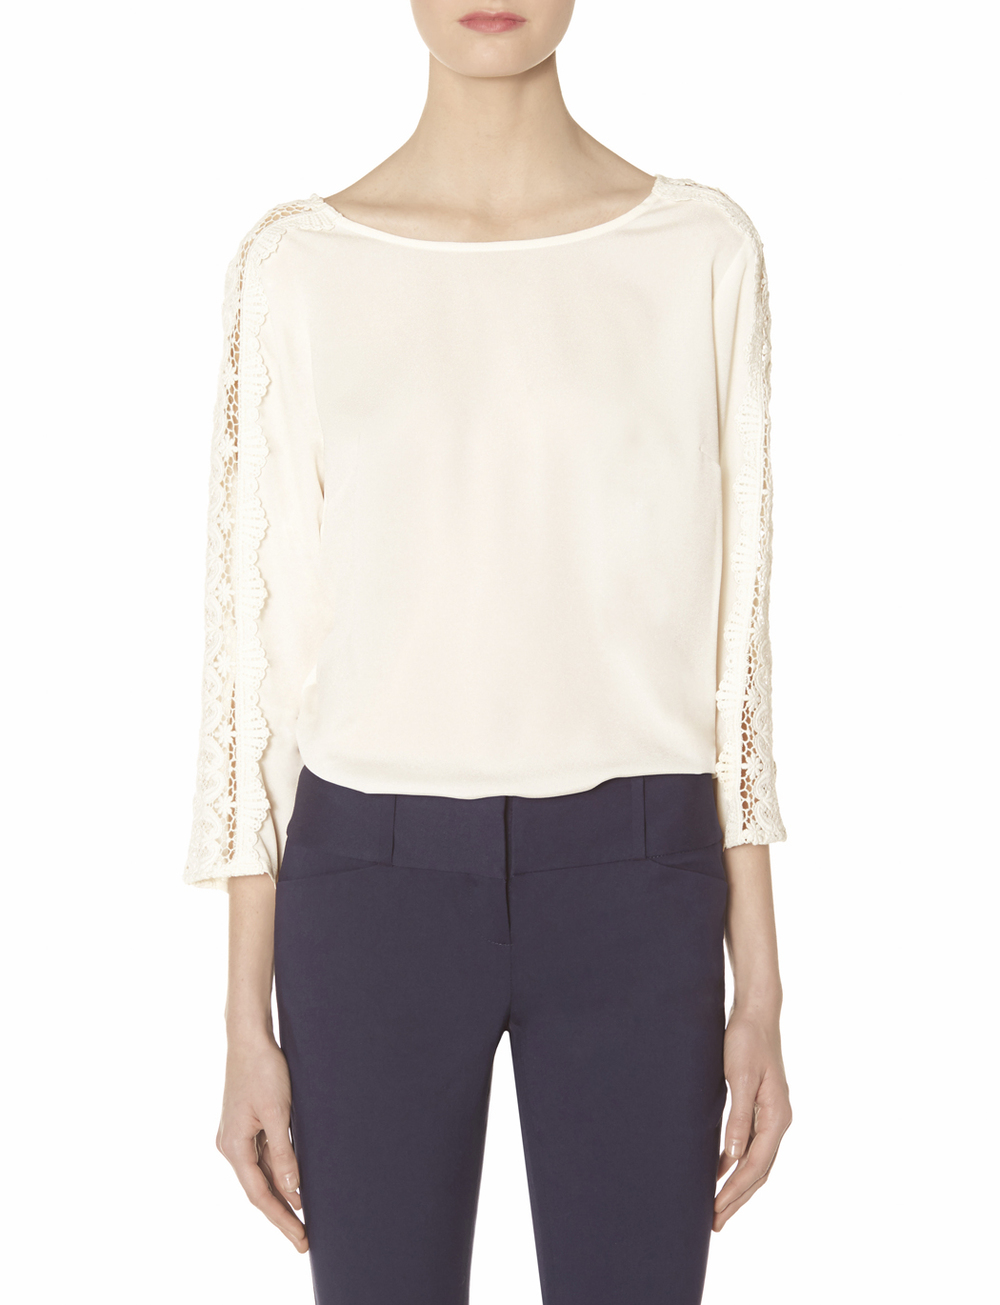 Lace sleeve blouse. Available in navy, white. Was: $59.95 Now: $35.97.